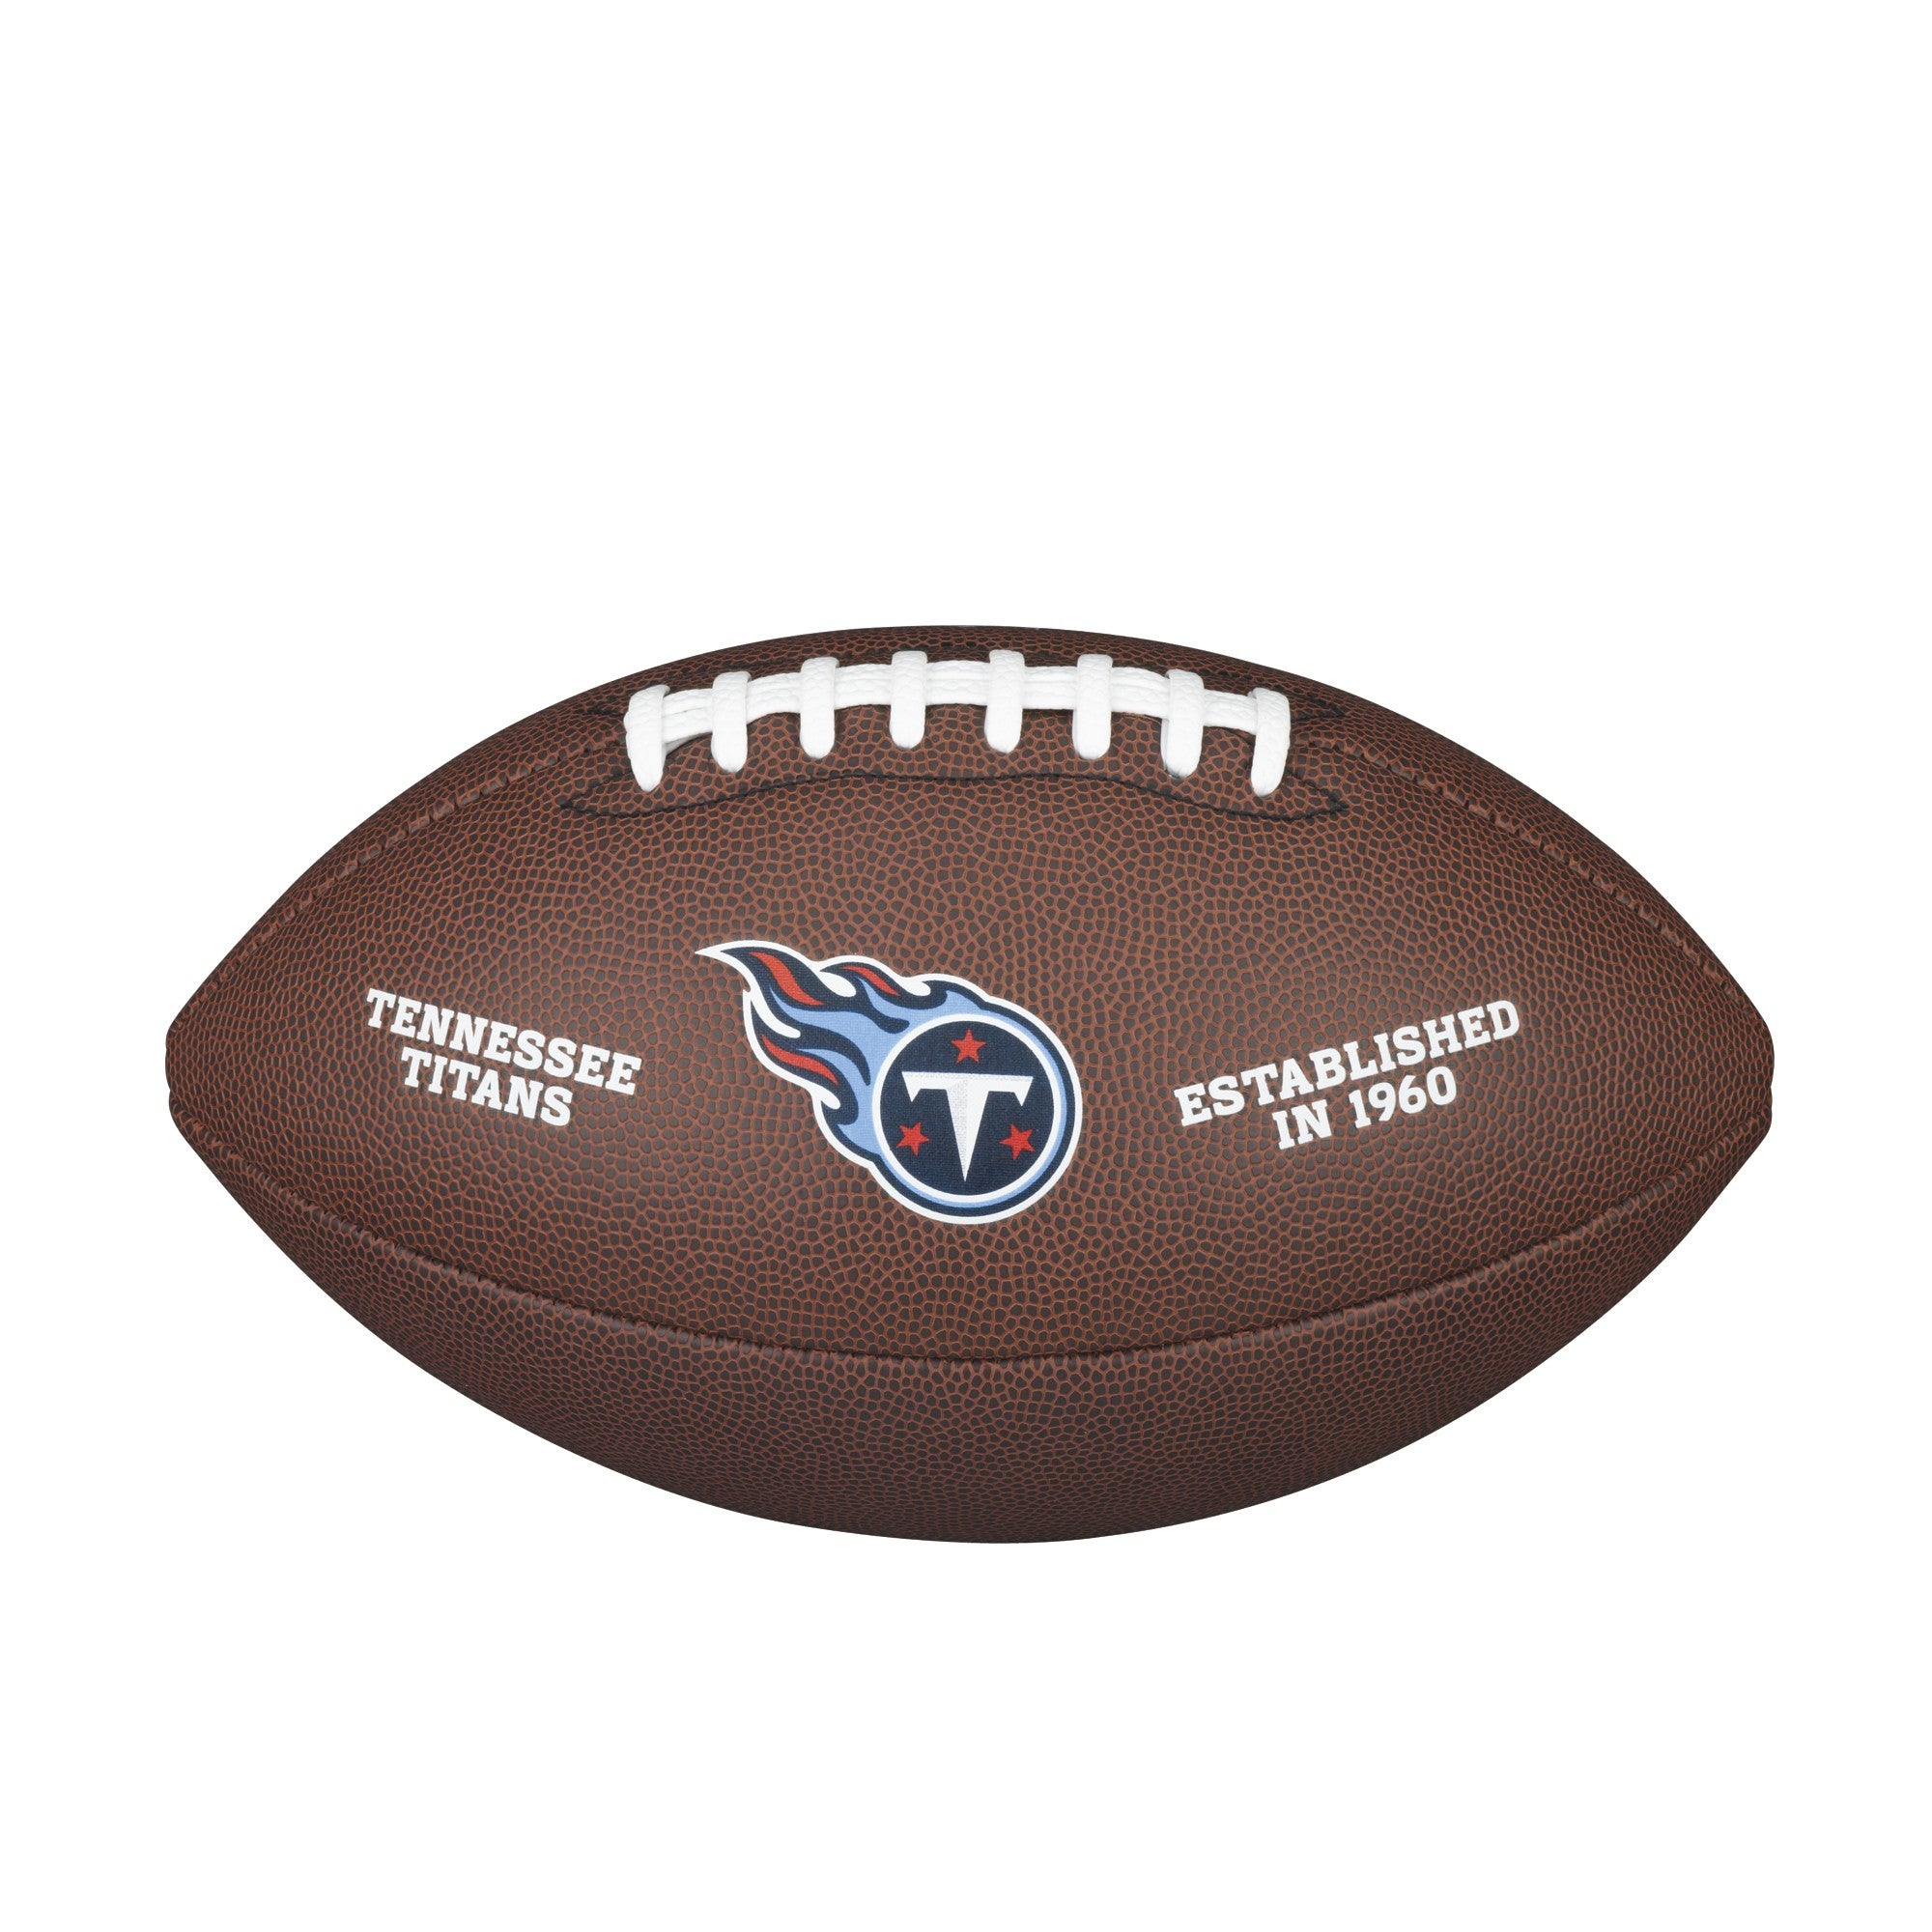 NFL Backyard Legend Football - Tennessee Titans